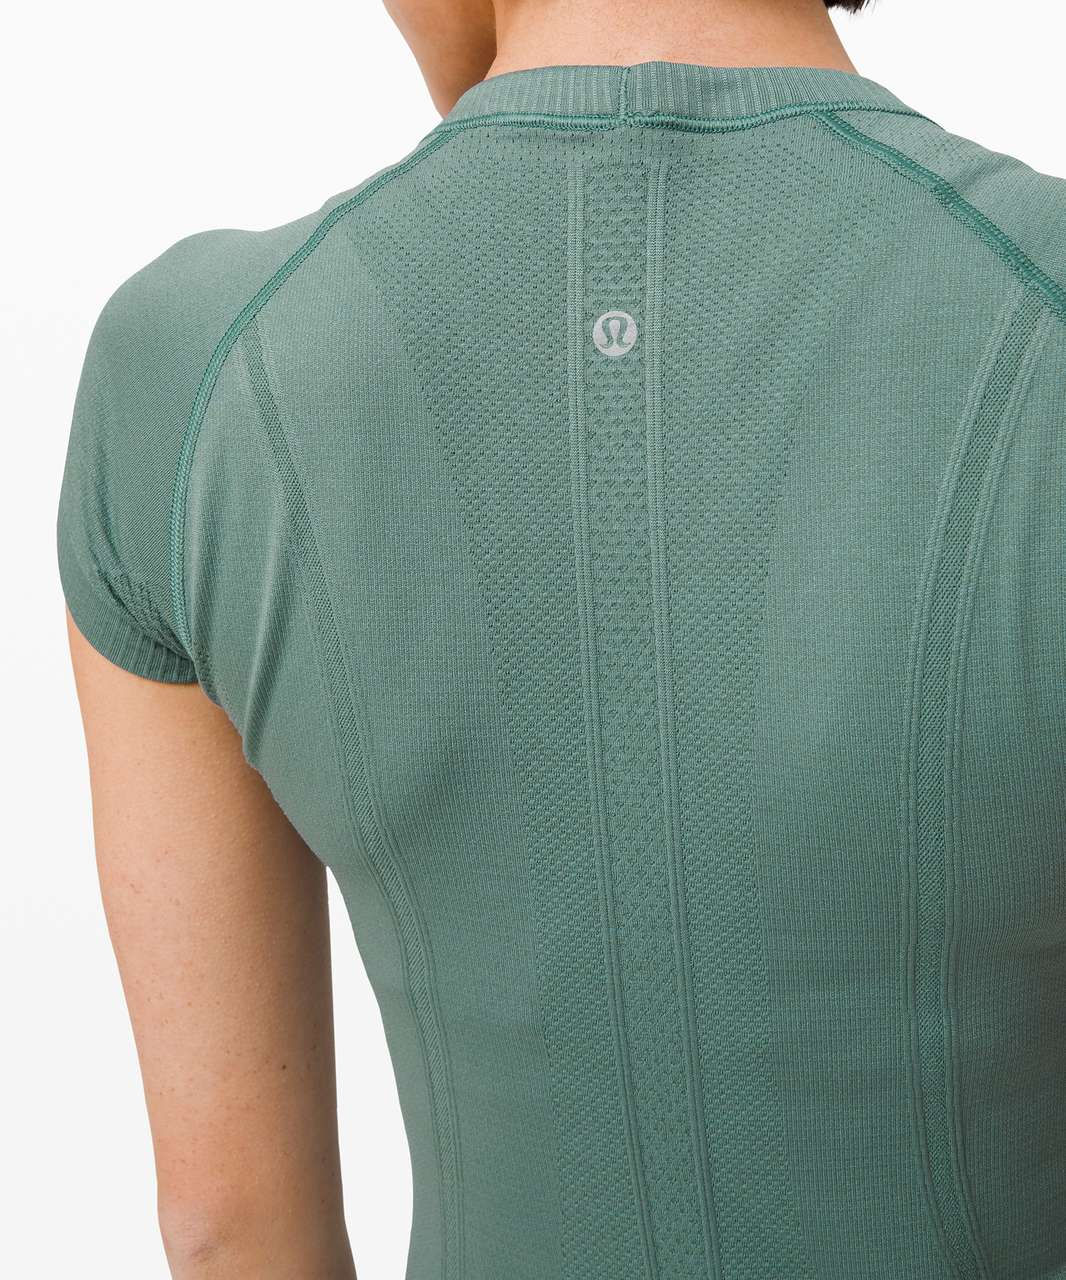 Lululemon Swiftly Tech Short Sleeve Crew - Tidewater Teal / Tidewater Teal